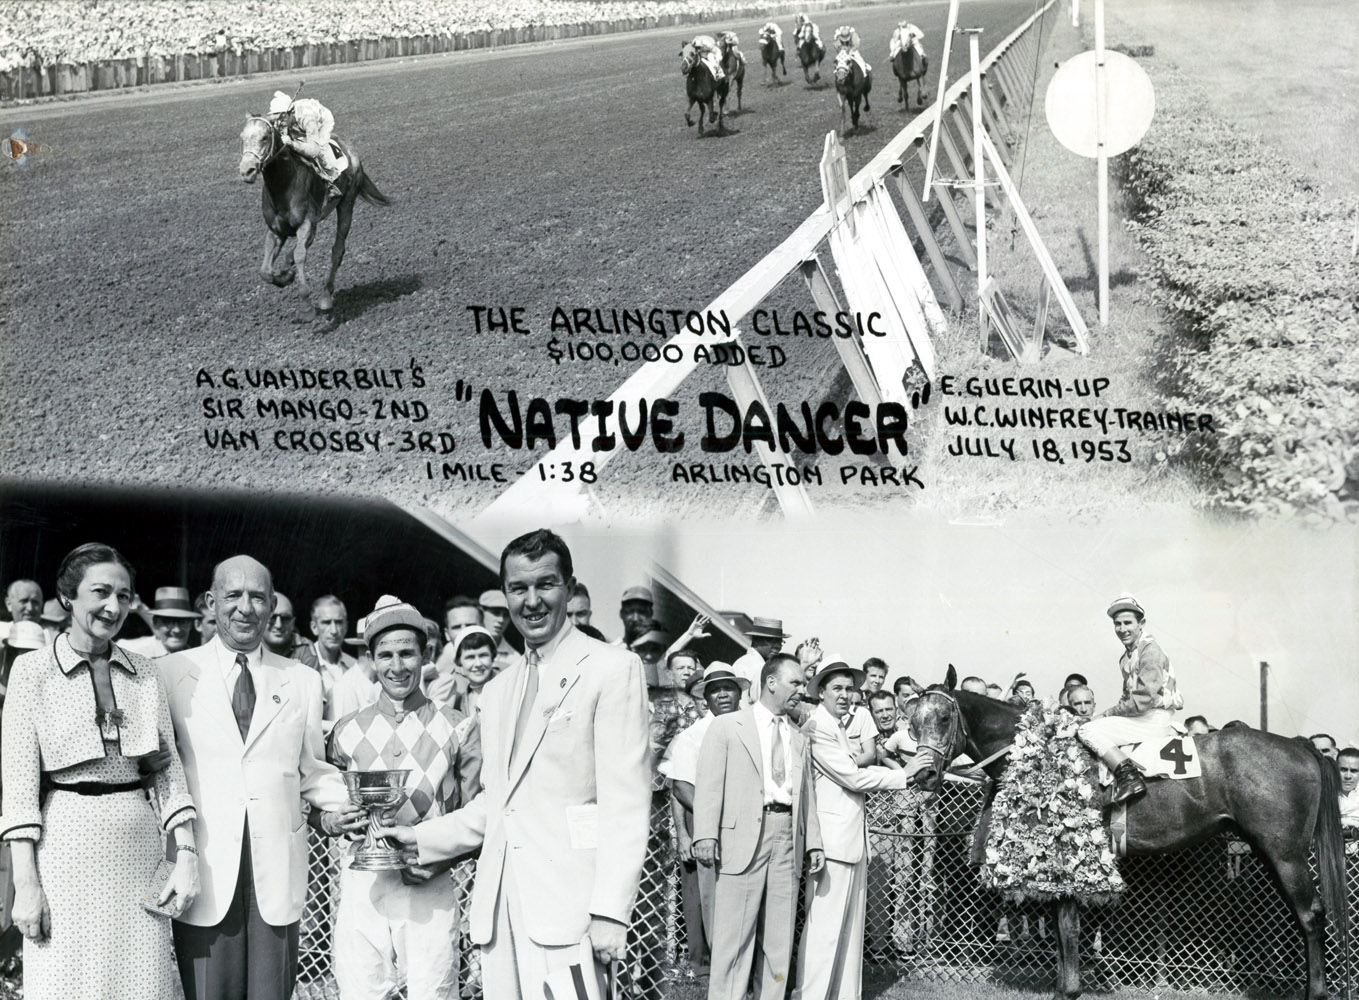 Win composite photograph for the 1953 Arlington Classic, won by Native Dancer with Eric Guerin up (Museum Collection)